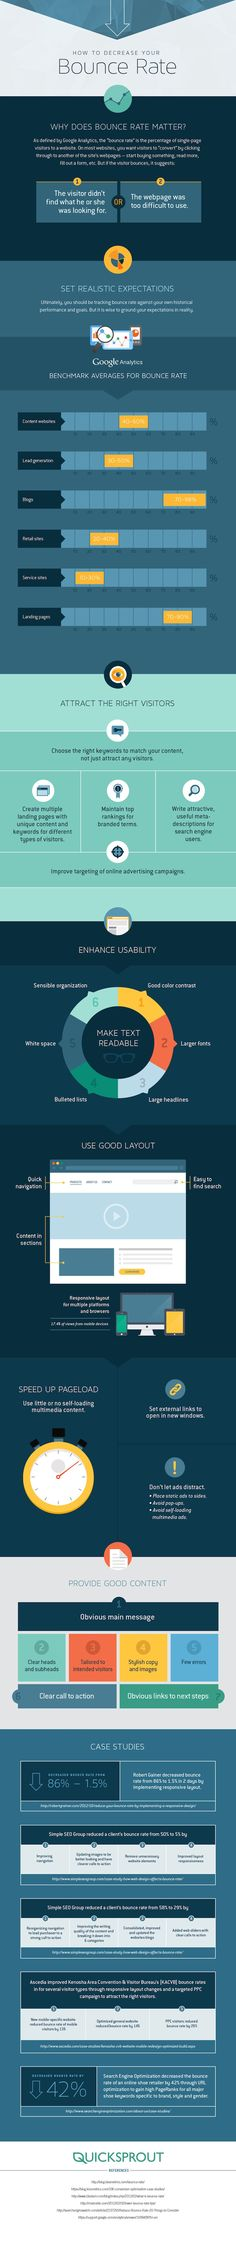 We found an infographic explaining how to Decrease Your Bounce Rate. Are you seeing a higher bounce rate on your site? Check out these tips to decrease it. Inbound Marketing, Marketing Digital, Business Marketing, Internet Marketing, Content Marketing, Online Marketing, Business Coaching, Business Branding, Business Tips